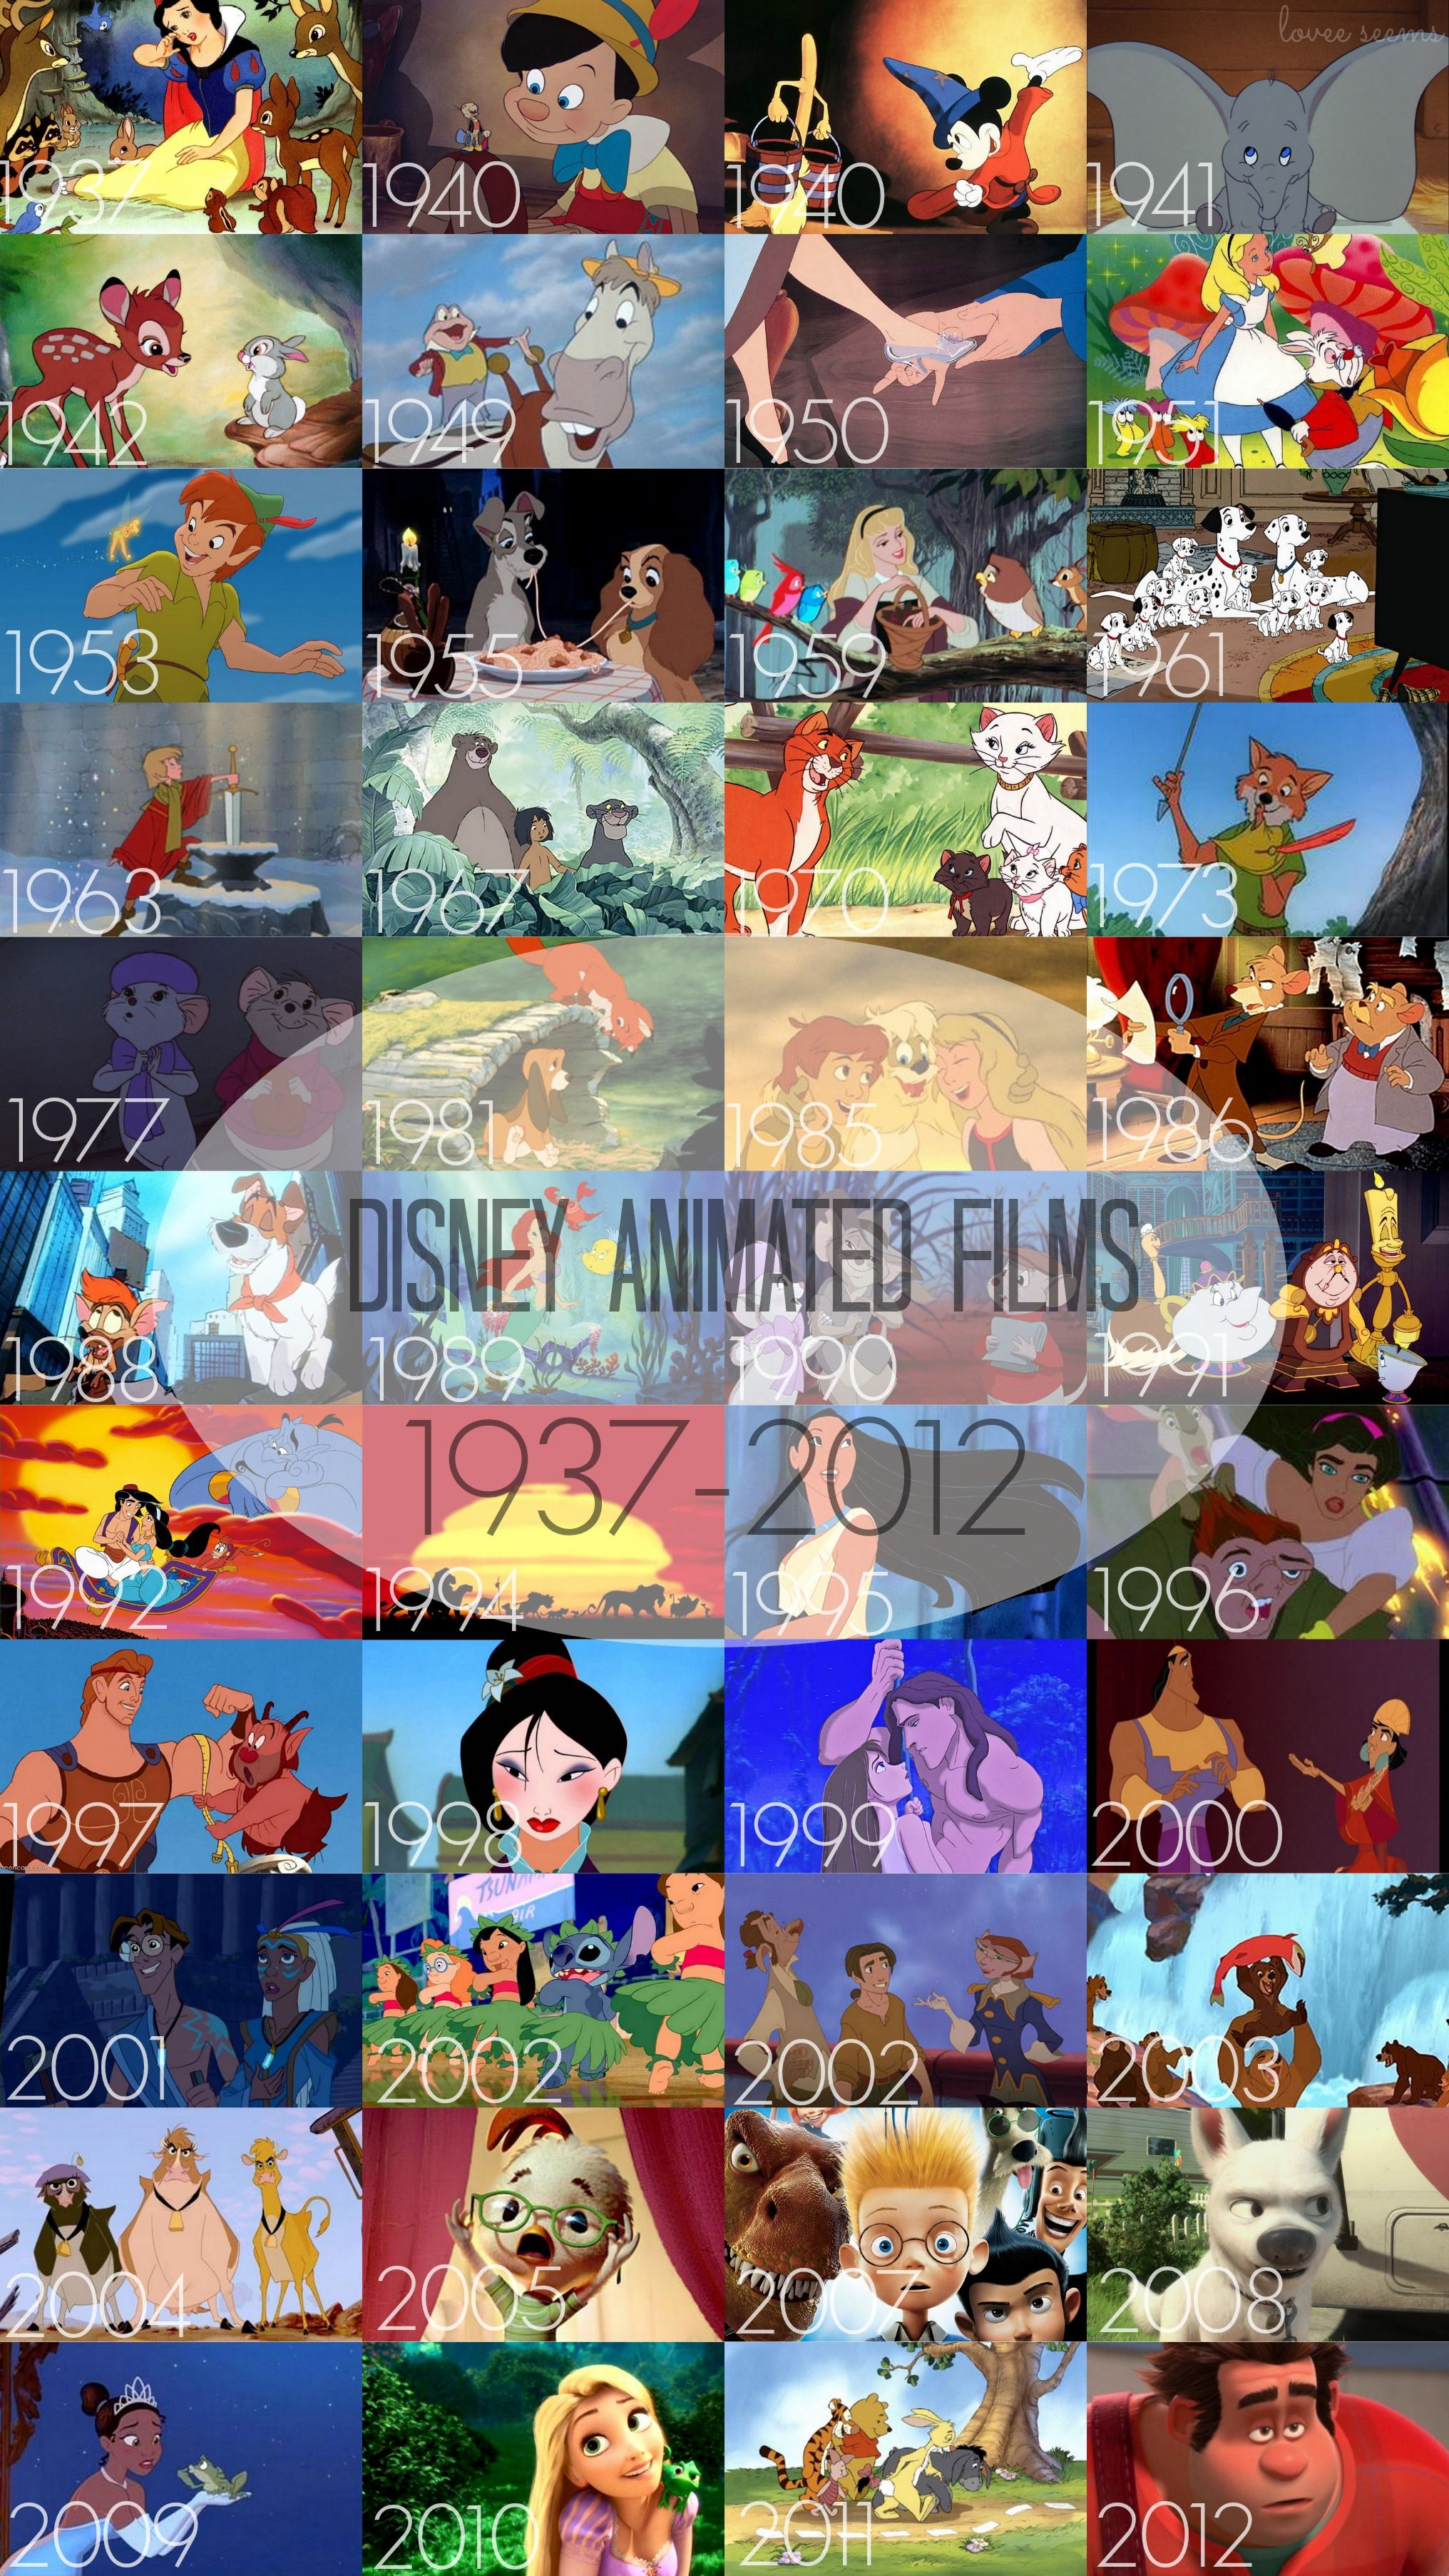 Walt disney animated feature films from 1937 2012 disney for House classics list